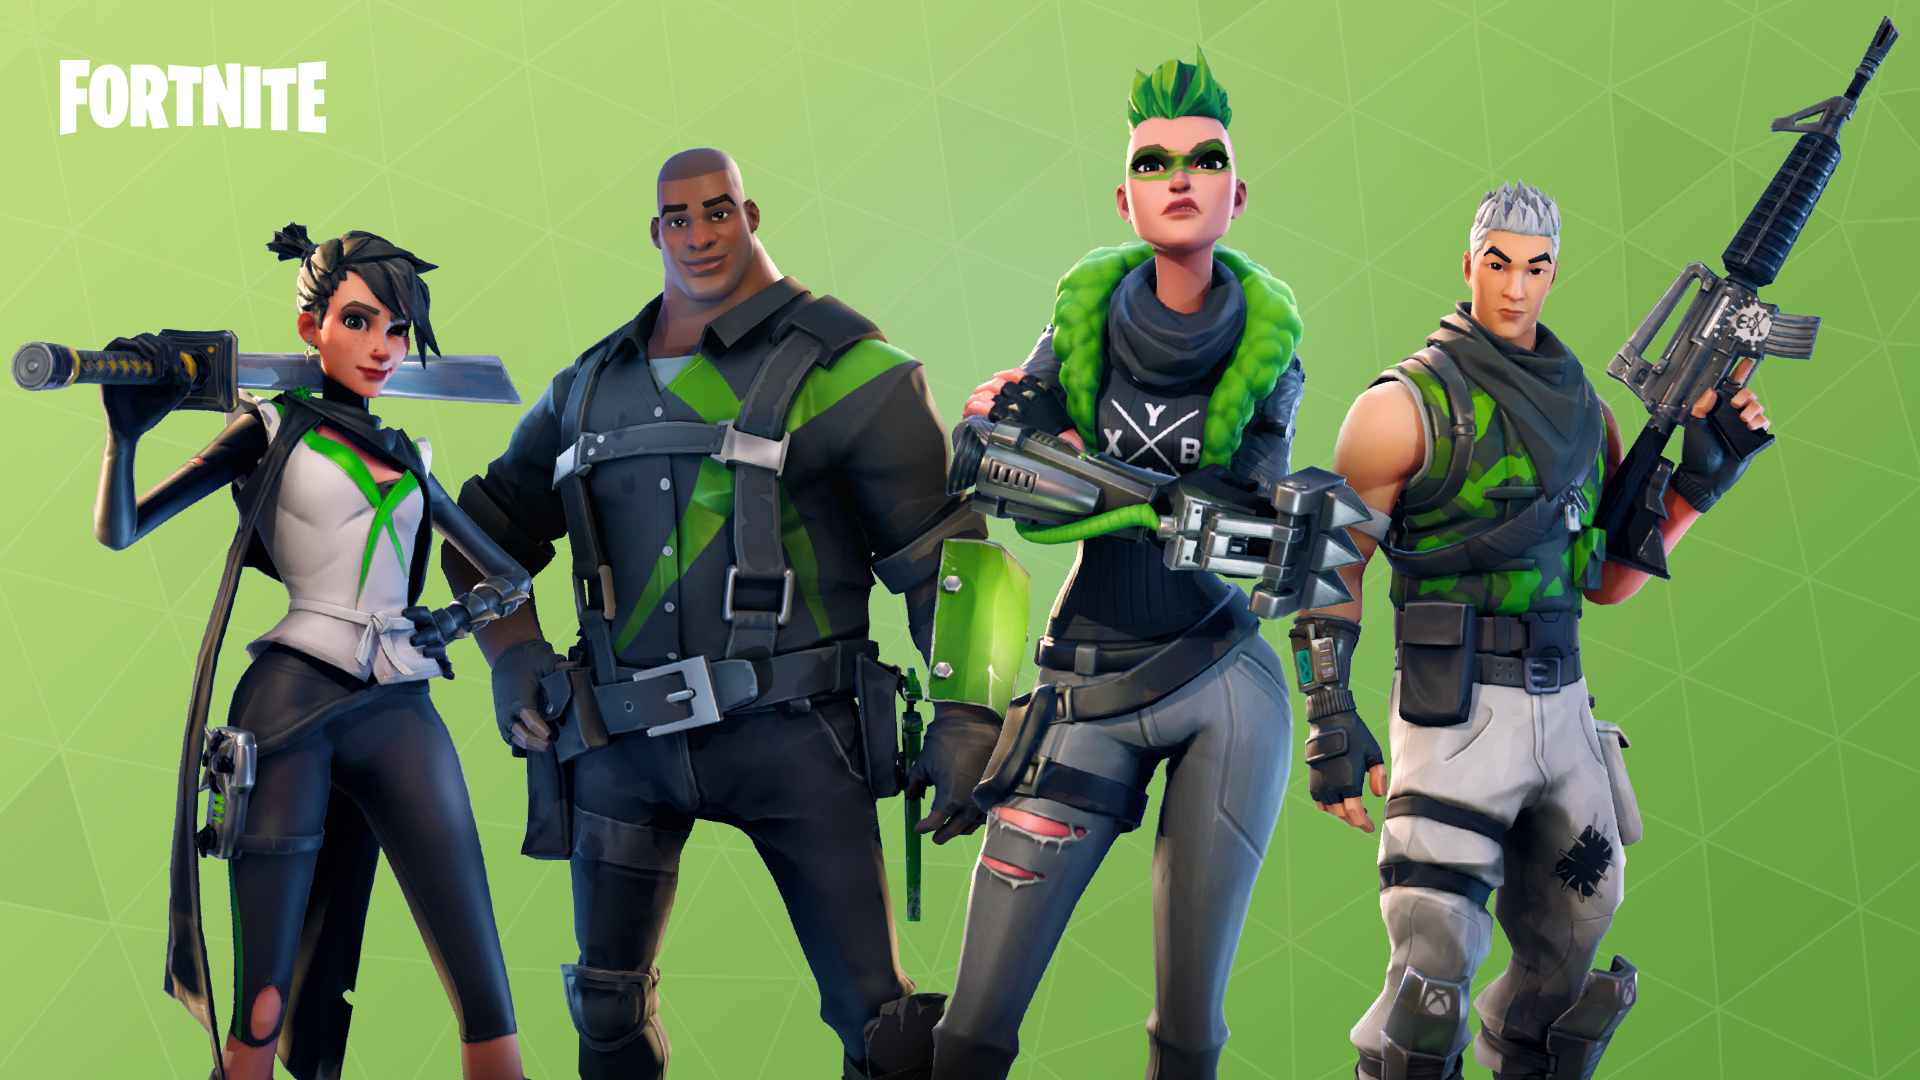 Sony_Fortnite_Social_Xbox-Exclusive-Skins_1920x1080.jpg